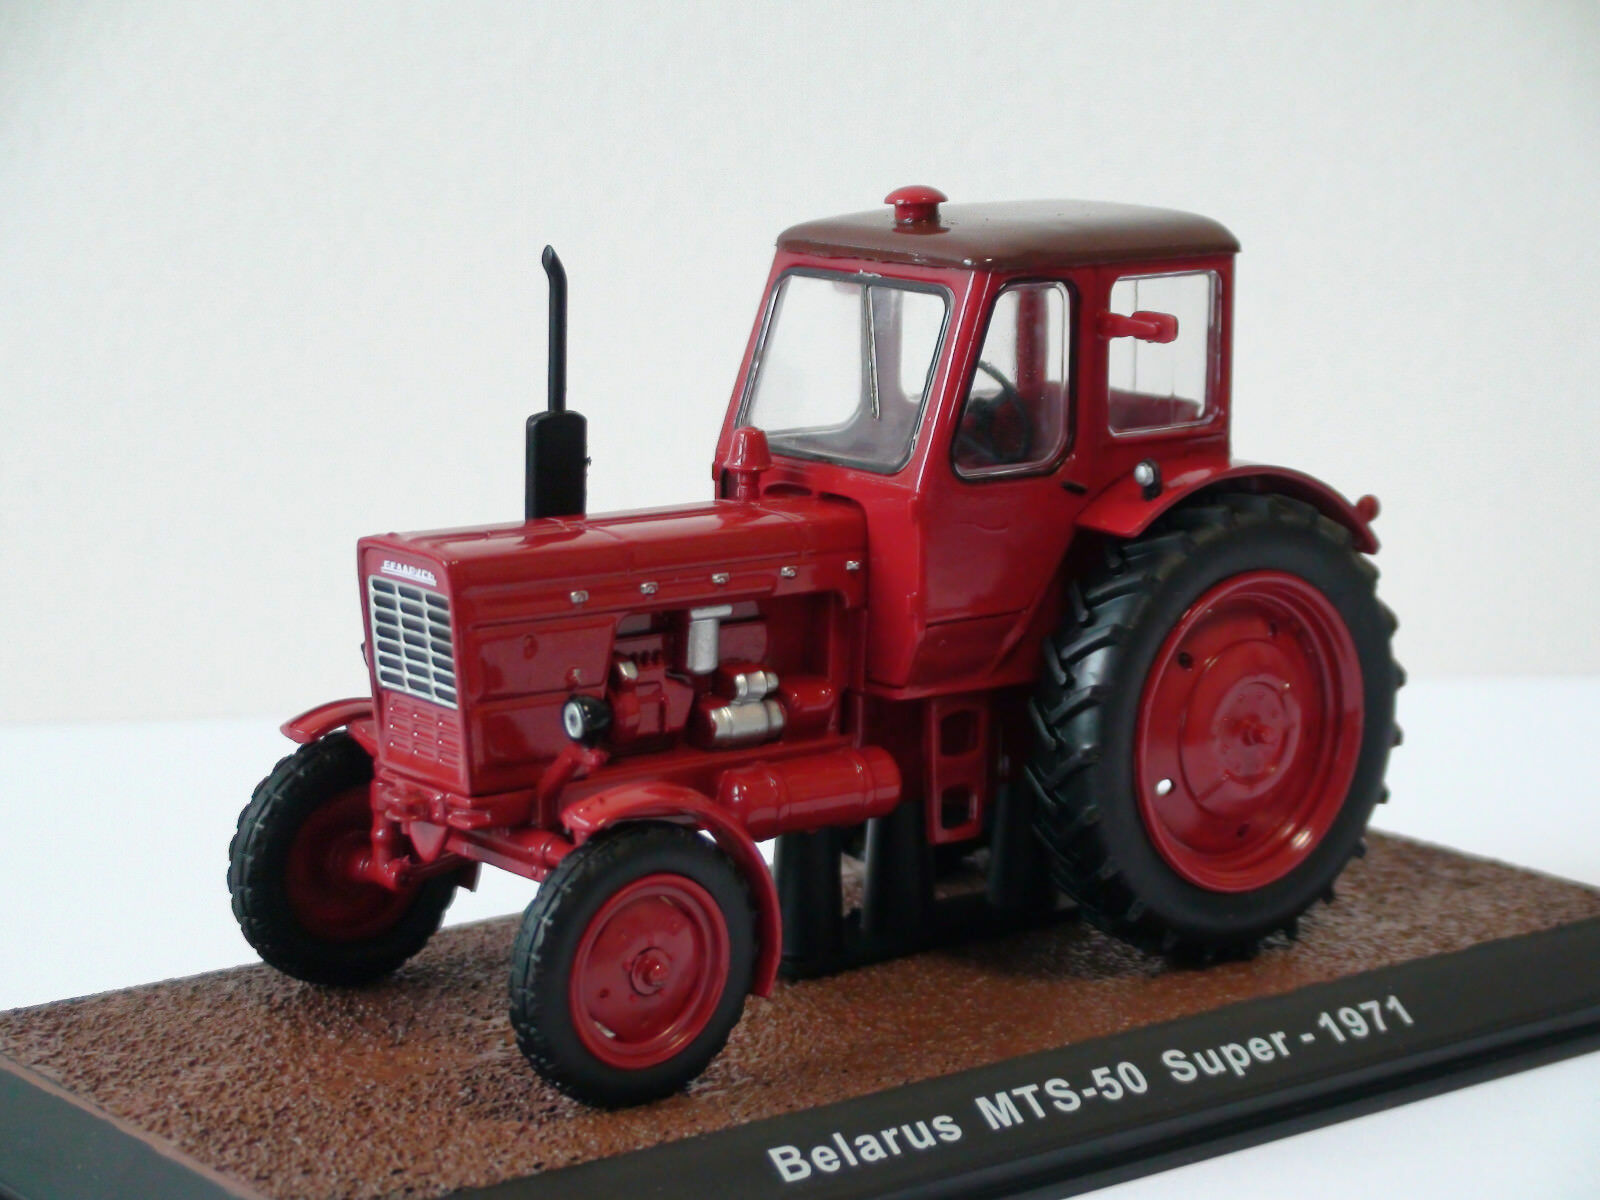 RARE  Belarus MTS-50 Super 1 32 Atlas Editions Tractor. Beautiful details